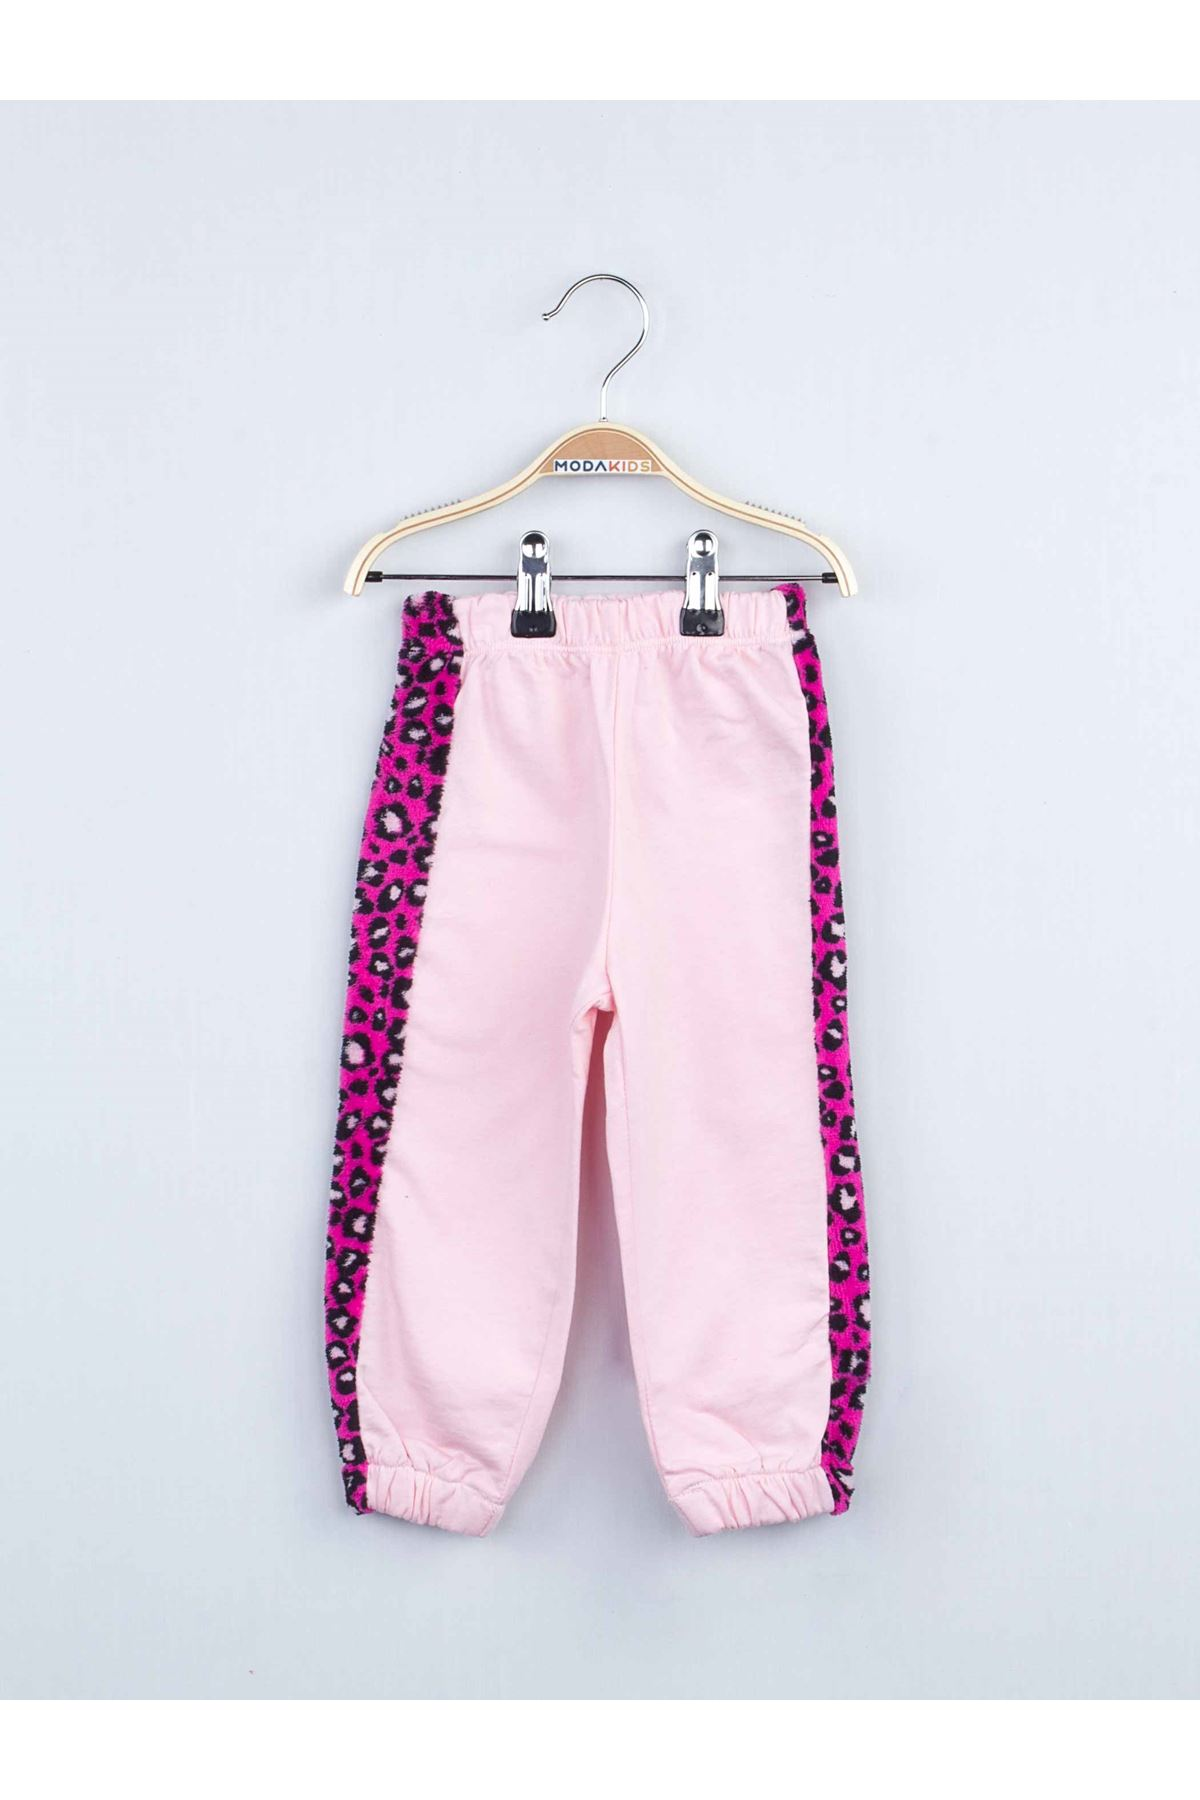 Pink Girls 2 Piece Tracksuit Set Casual Teenage Kids Seasonal Cotton Casual Girl Clothing Outfits Models